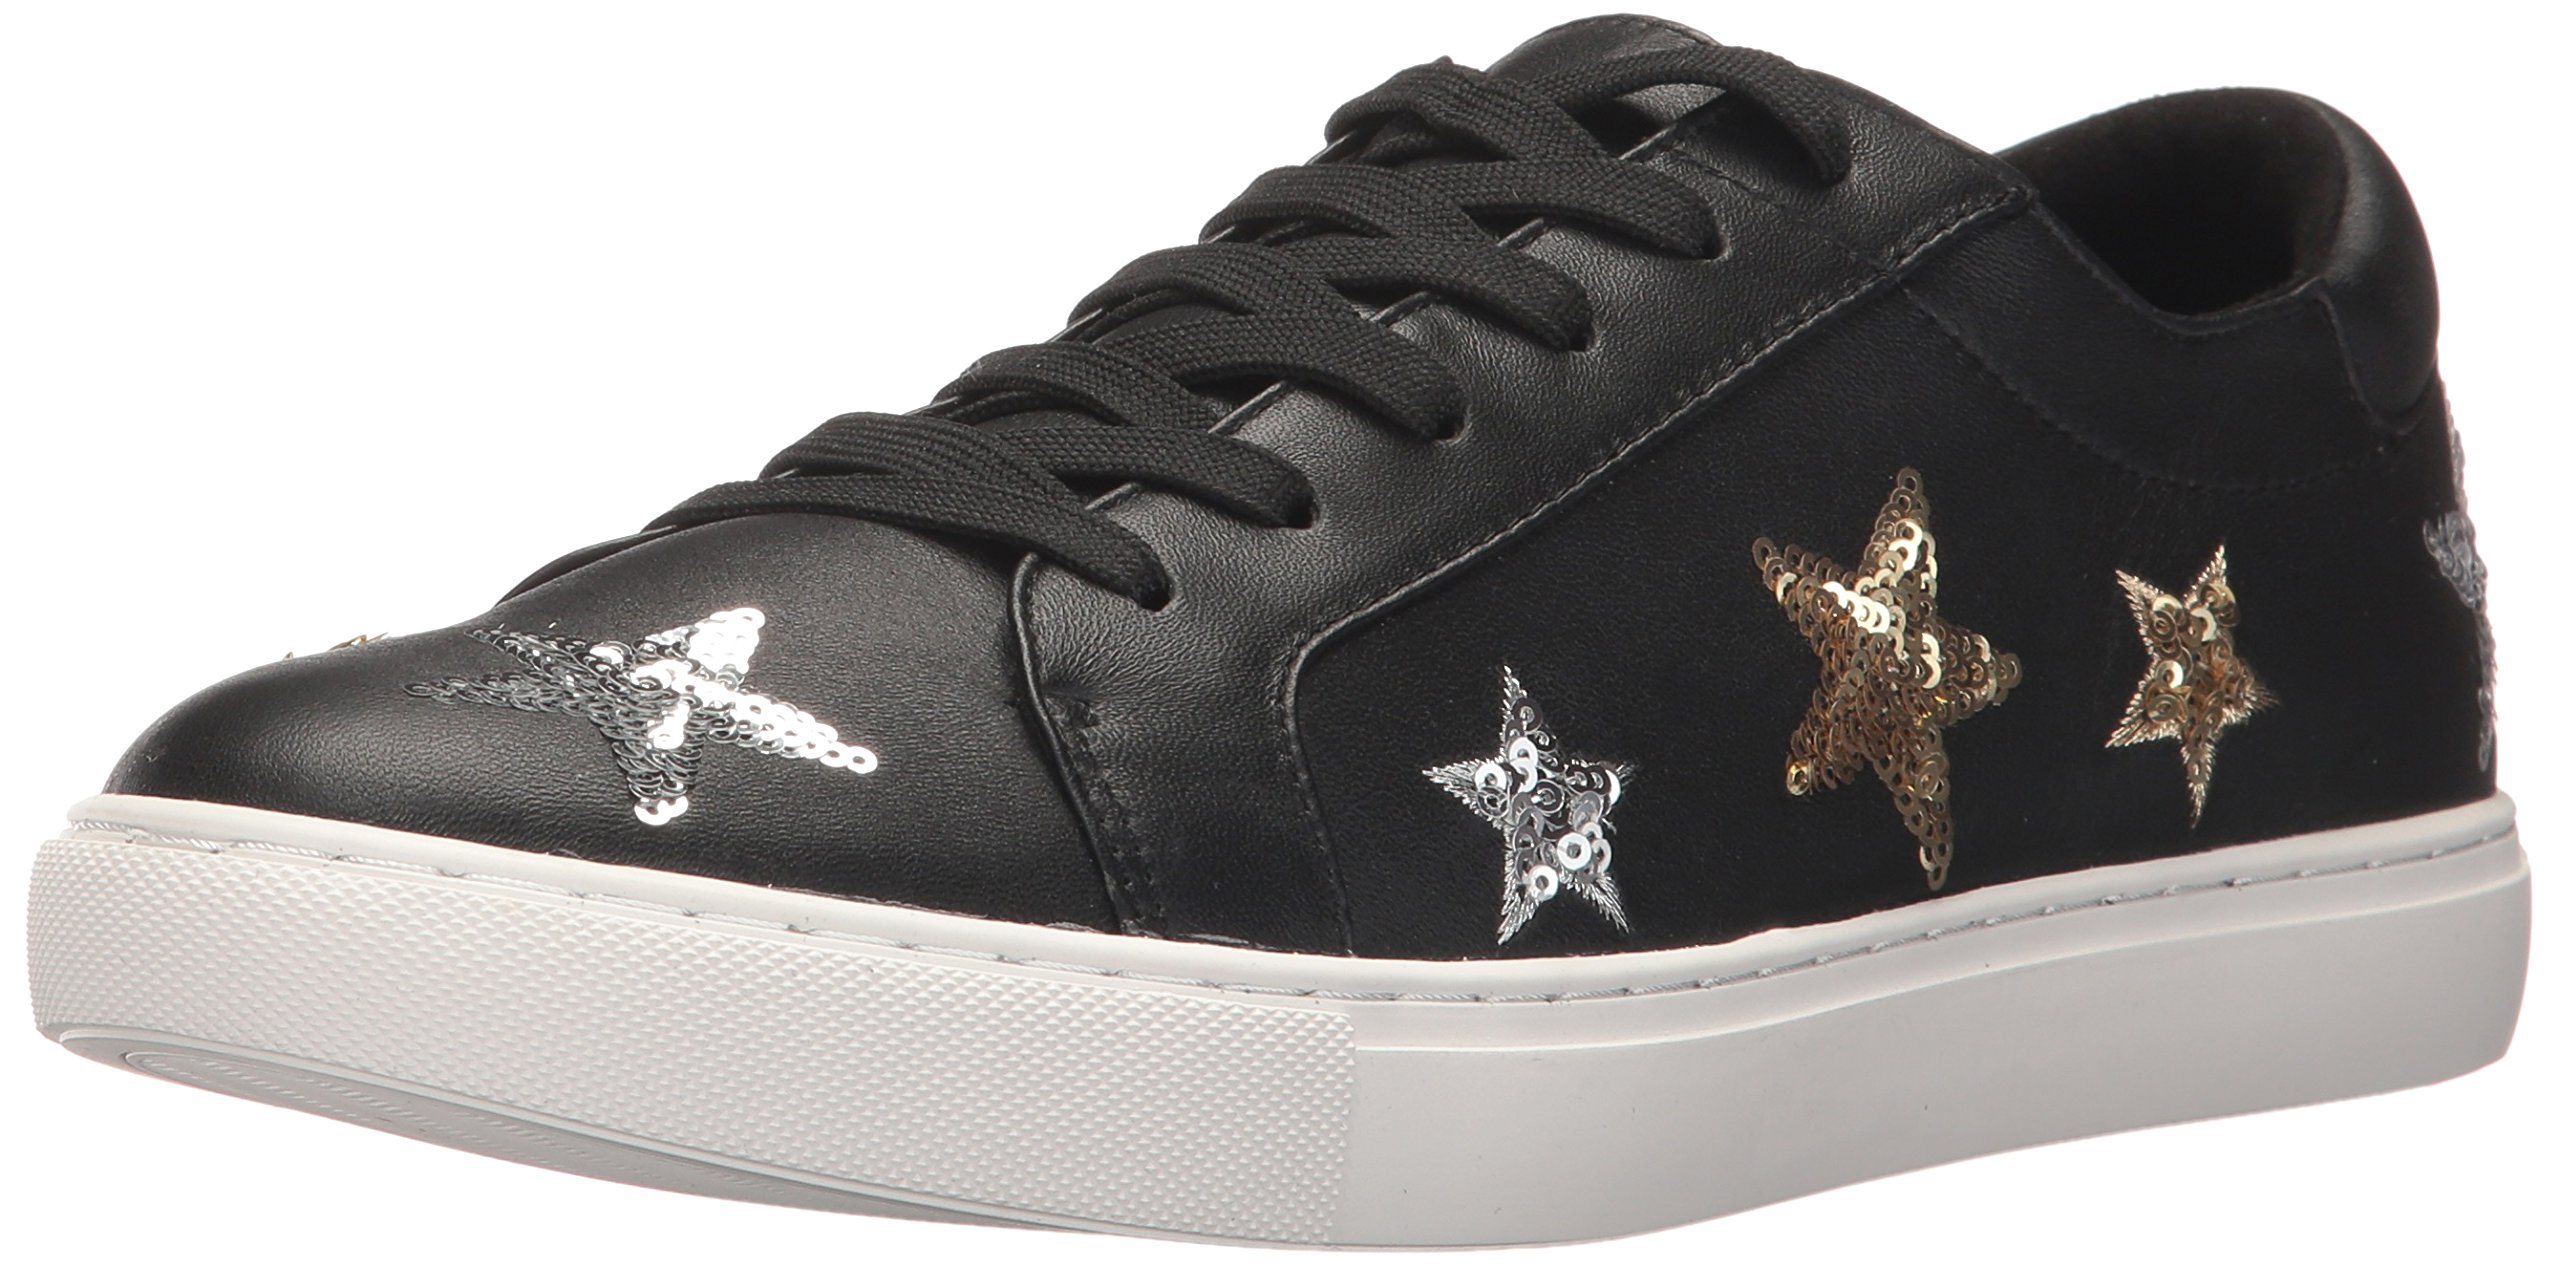 Kenneth Cole New York Women's Kam 11 Star Patches Fashion Sneaker, Black, 7 M US